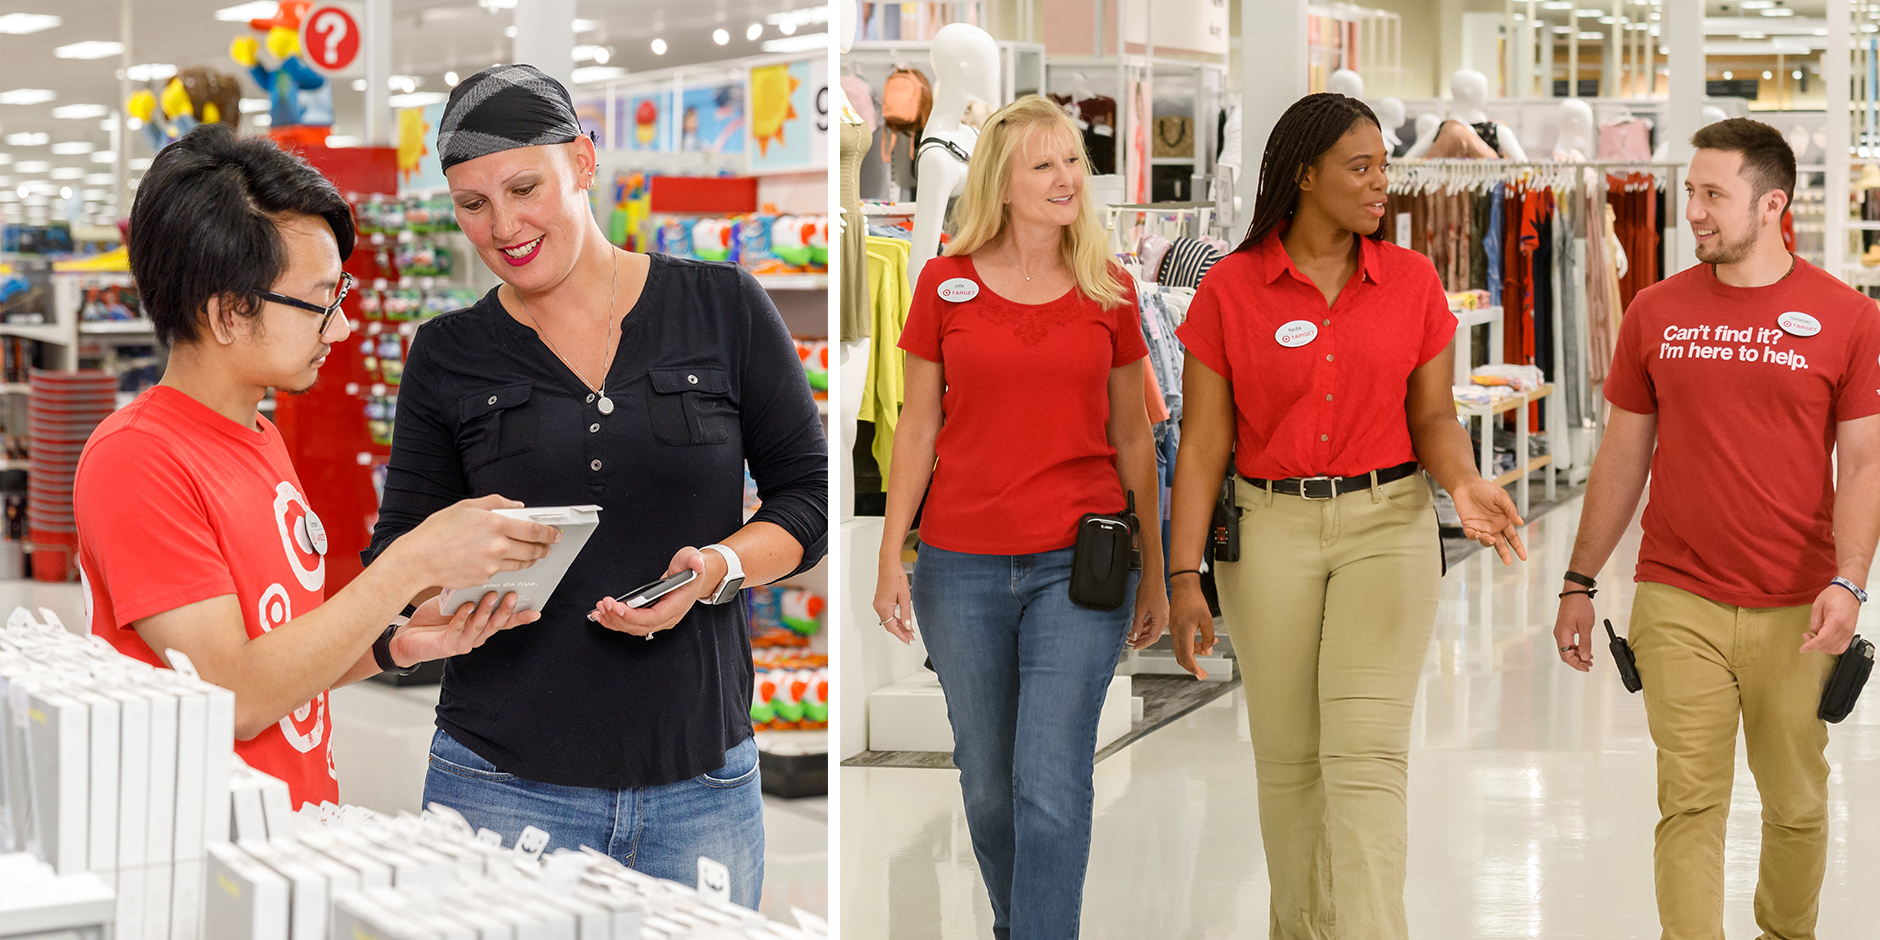 A team member shows a guest a product; three team members walk the aisles of a store